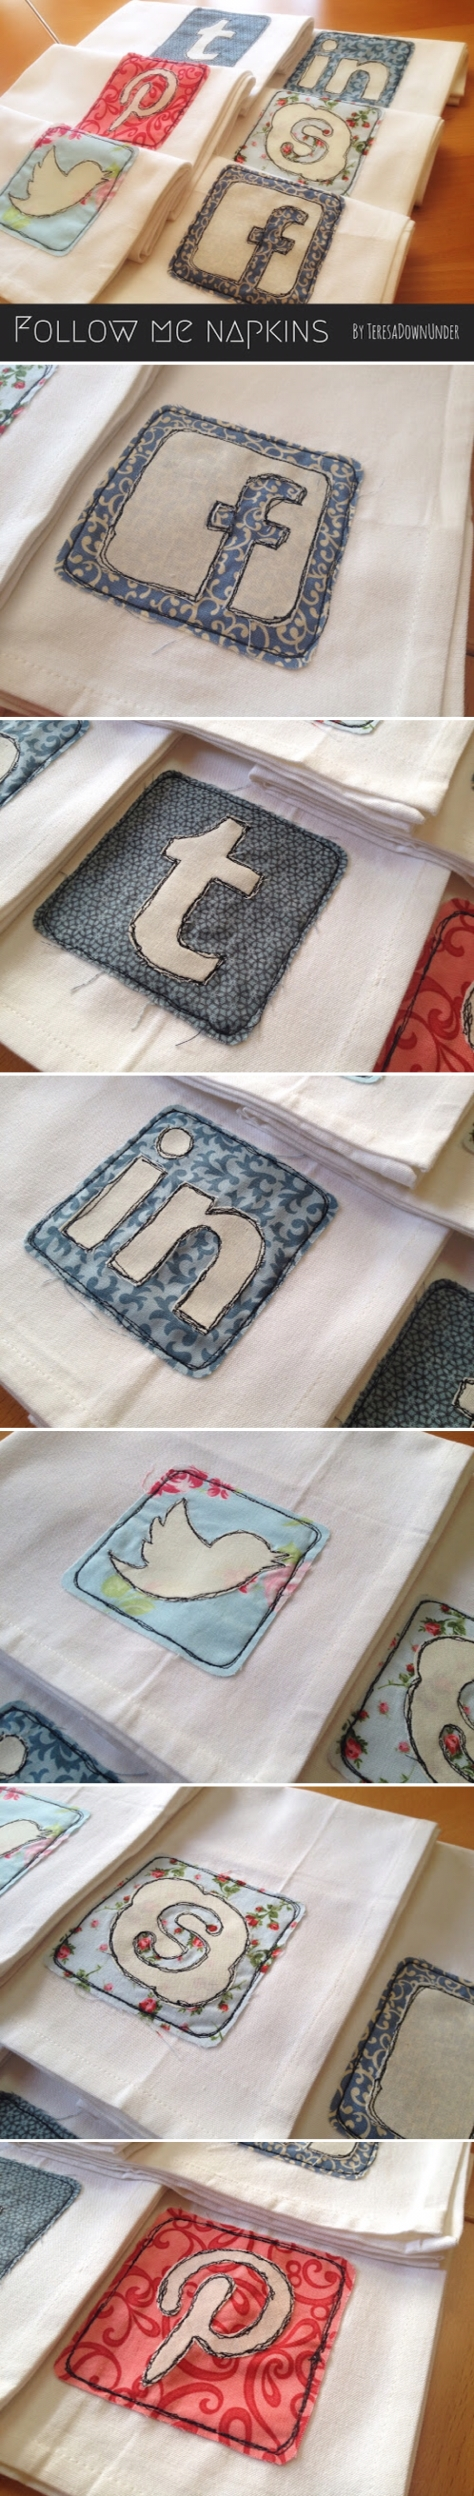 Tutorial and patterns for social media napkins - Follow me napkins